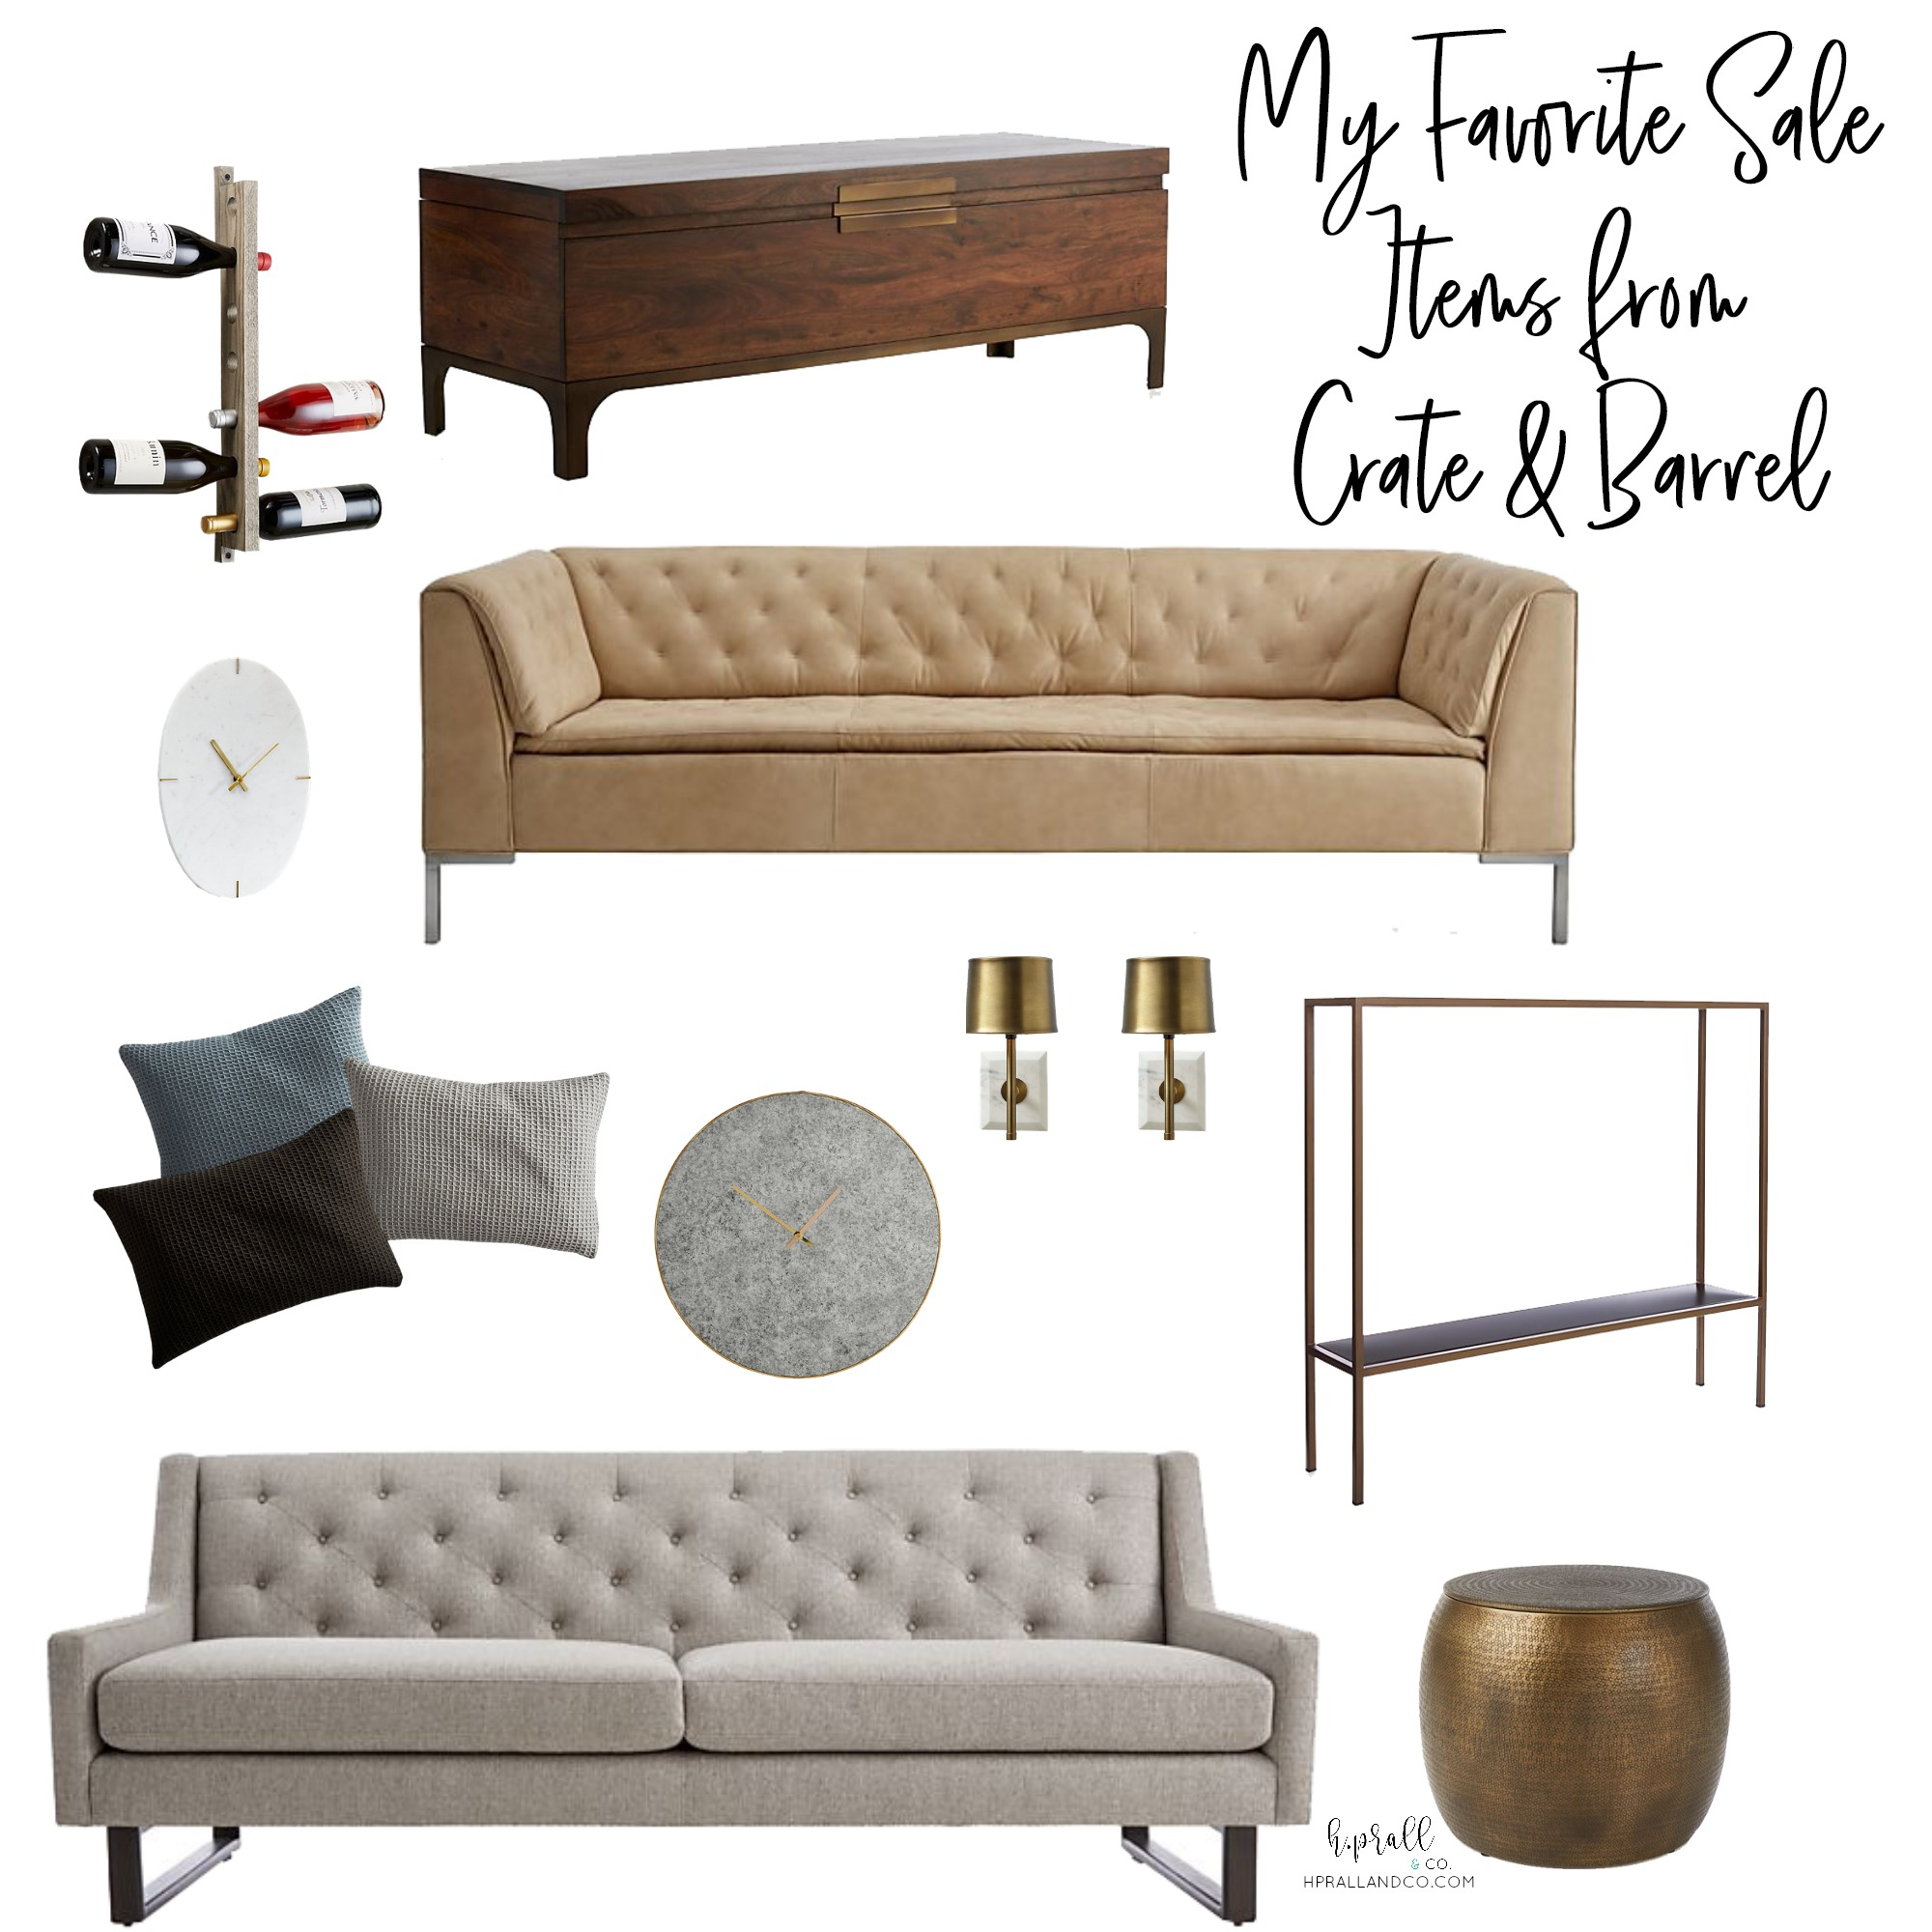 I'm sharing my favorite sale items from Crate & Barrel over at hprallandco.com! H.Prall & Co. Interior Decorating Des Moines, IA